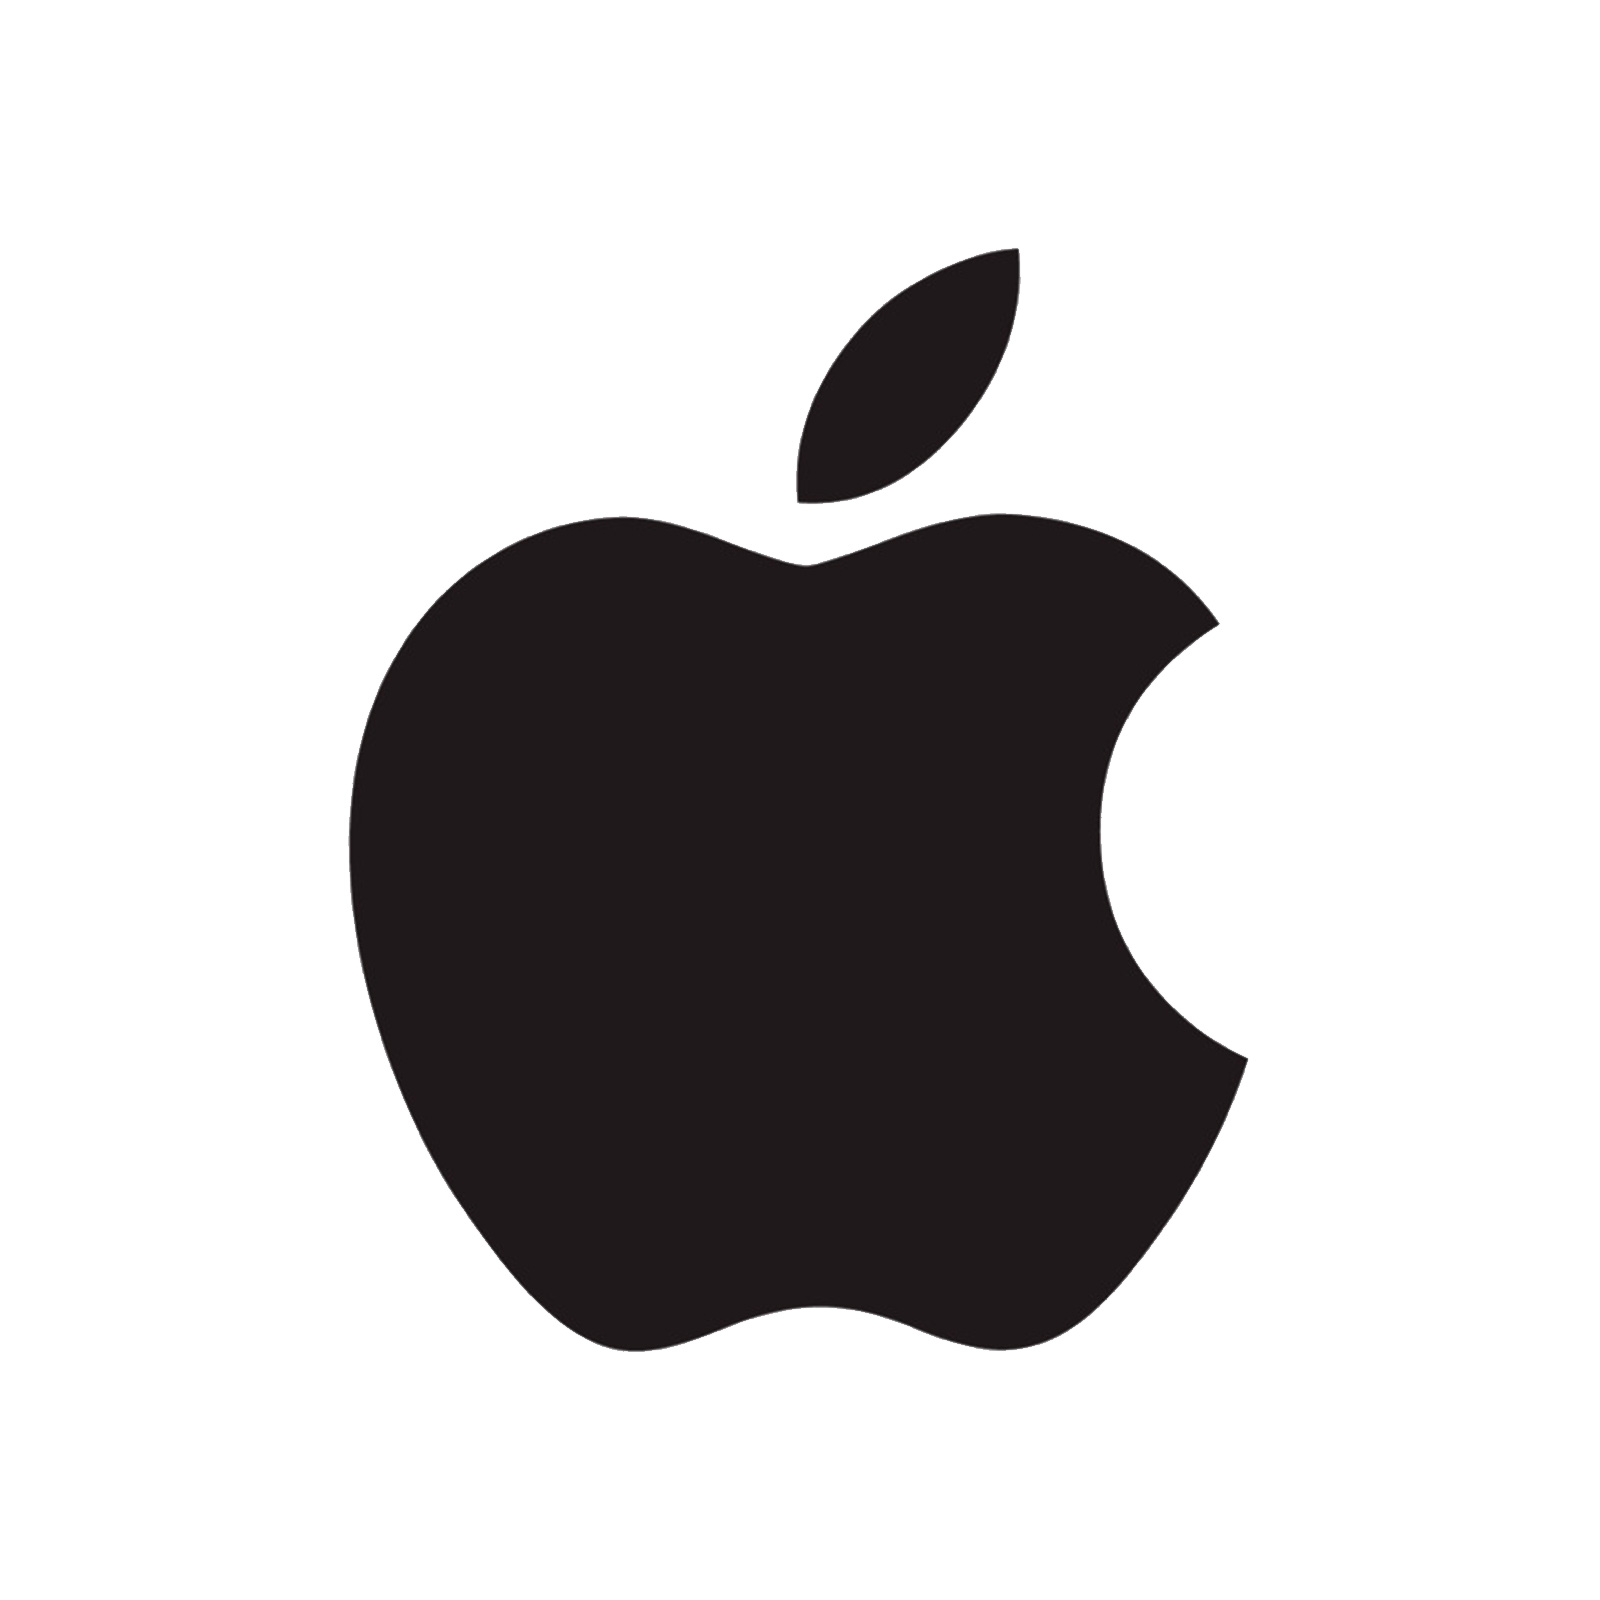 Apple Inc. is an American multinational technology company headquartered in Cupertino, California, that designs, develops, and sells consumer electronics, computer software, and online services. The company developed iTunes ping as a music-oriented social networking site and a recommender system.